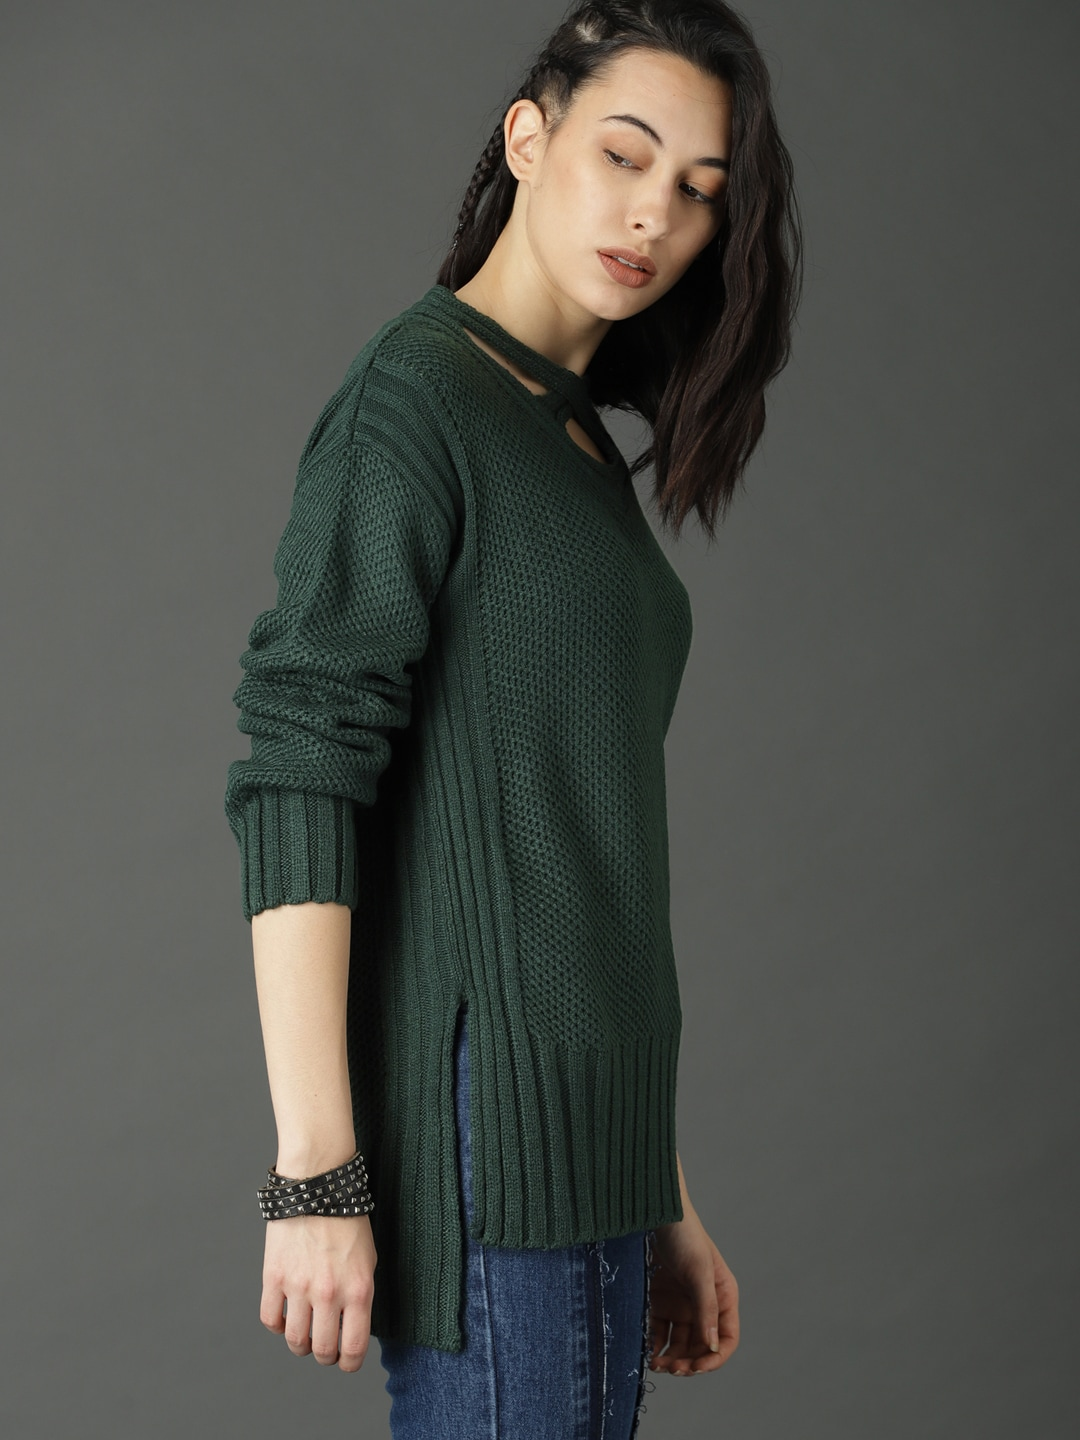 8903037eac Sweaters for Women - Buy Womens Sweaters Online - Myntra